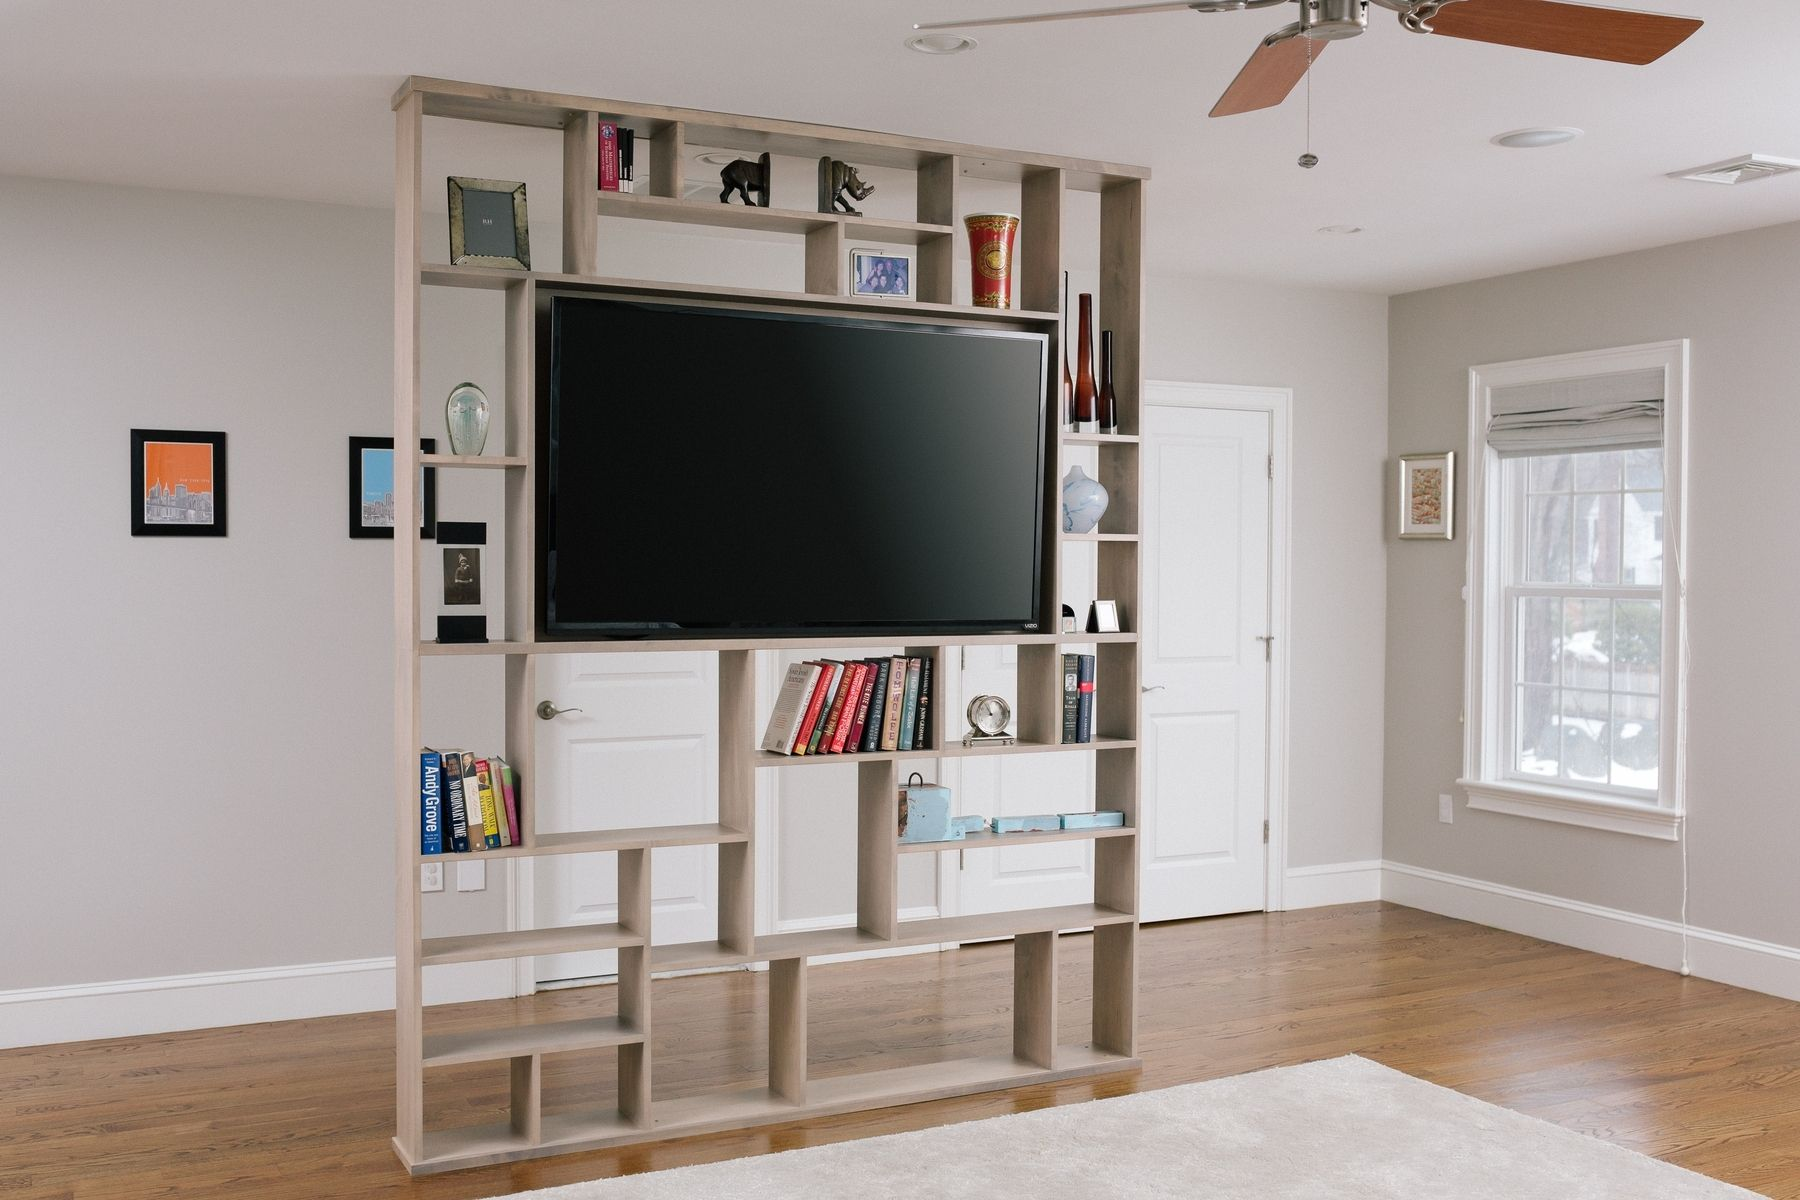 Custom Made Lexington Room Divider Bookshelf Tv Stand